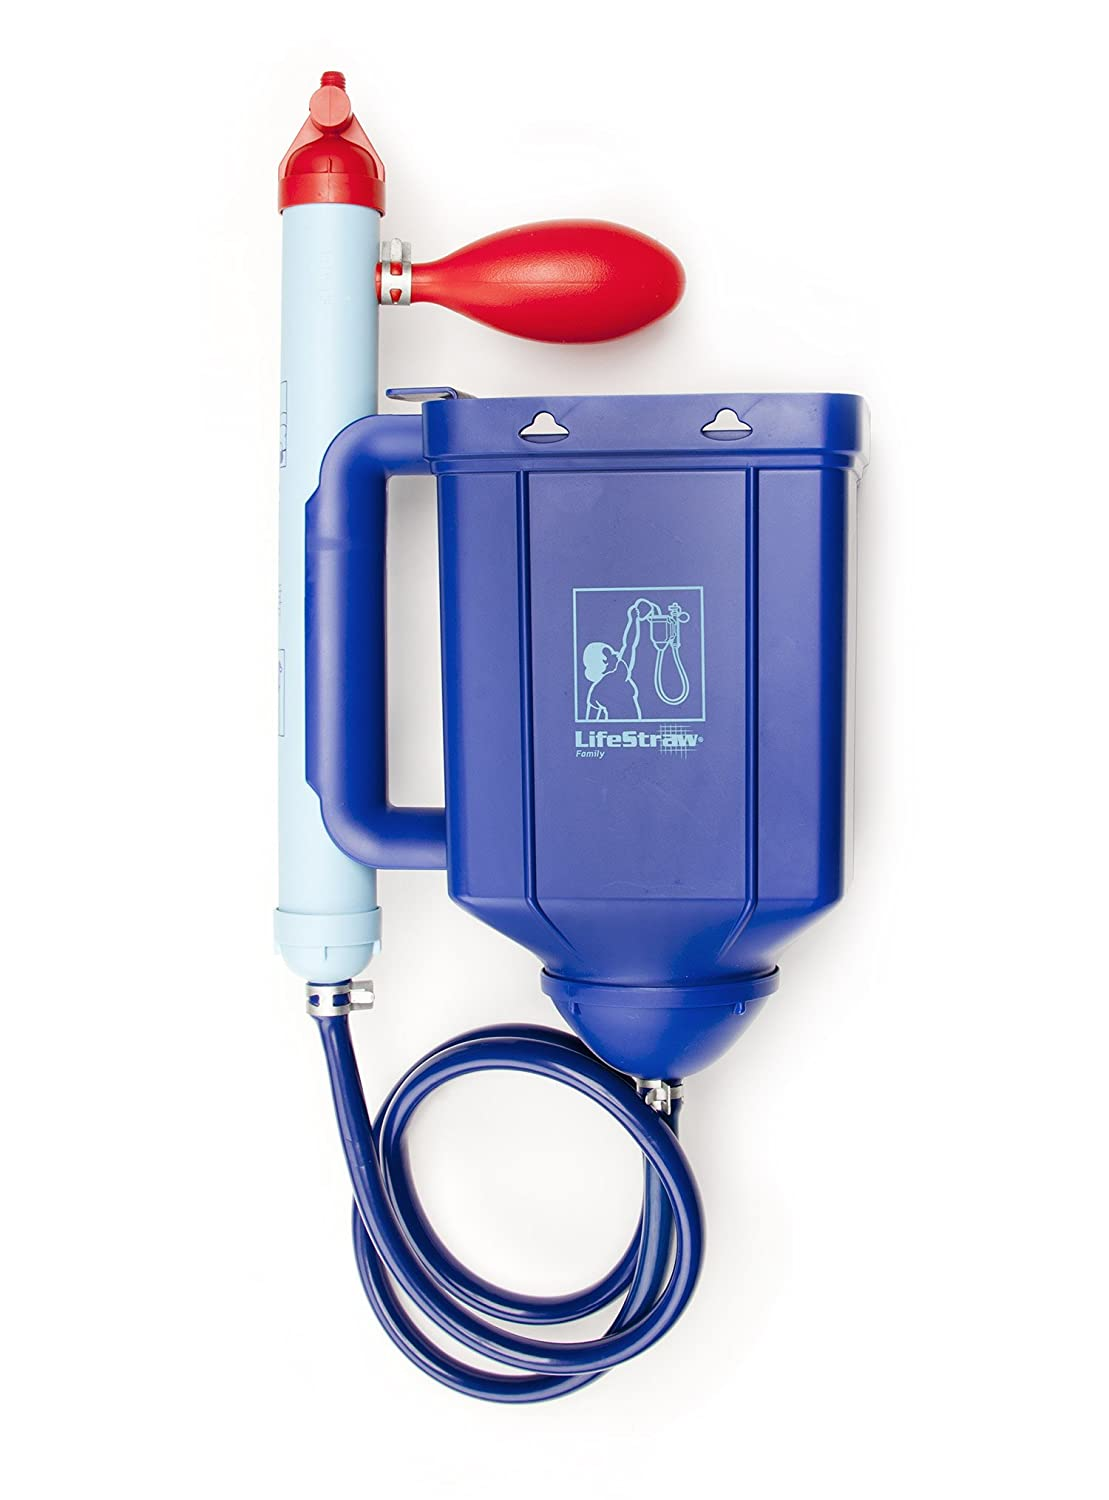 lifestraw family 1.0 water purifier - Powerful Filter